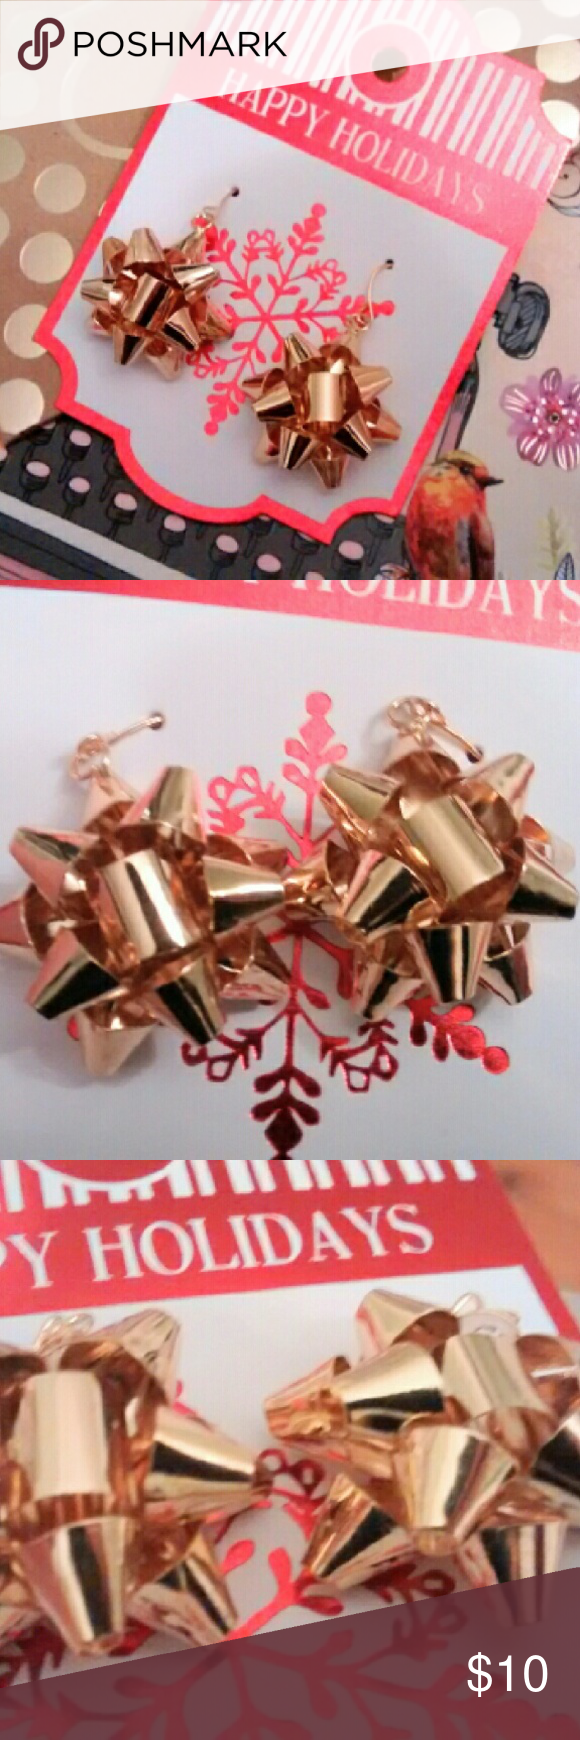 Gold Christmas Bow Dangle Earrings Brand new metal gold tone Christmas bow dangle earrings! Perfect Christmas gift! Ask about gift wrap! Jewelry Earrings